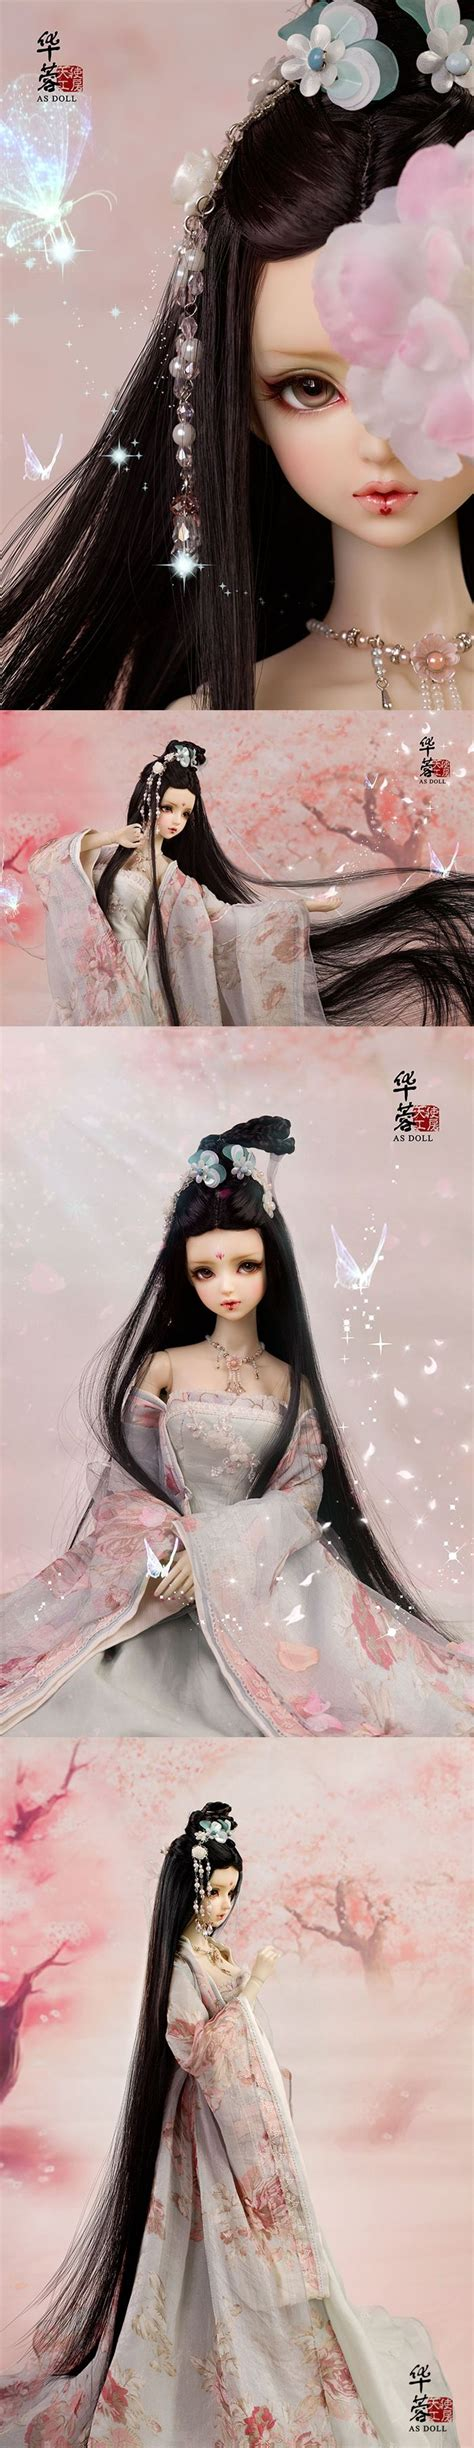 jointed doll size 13990 best resin jointed dolls images on